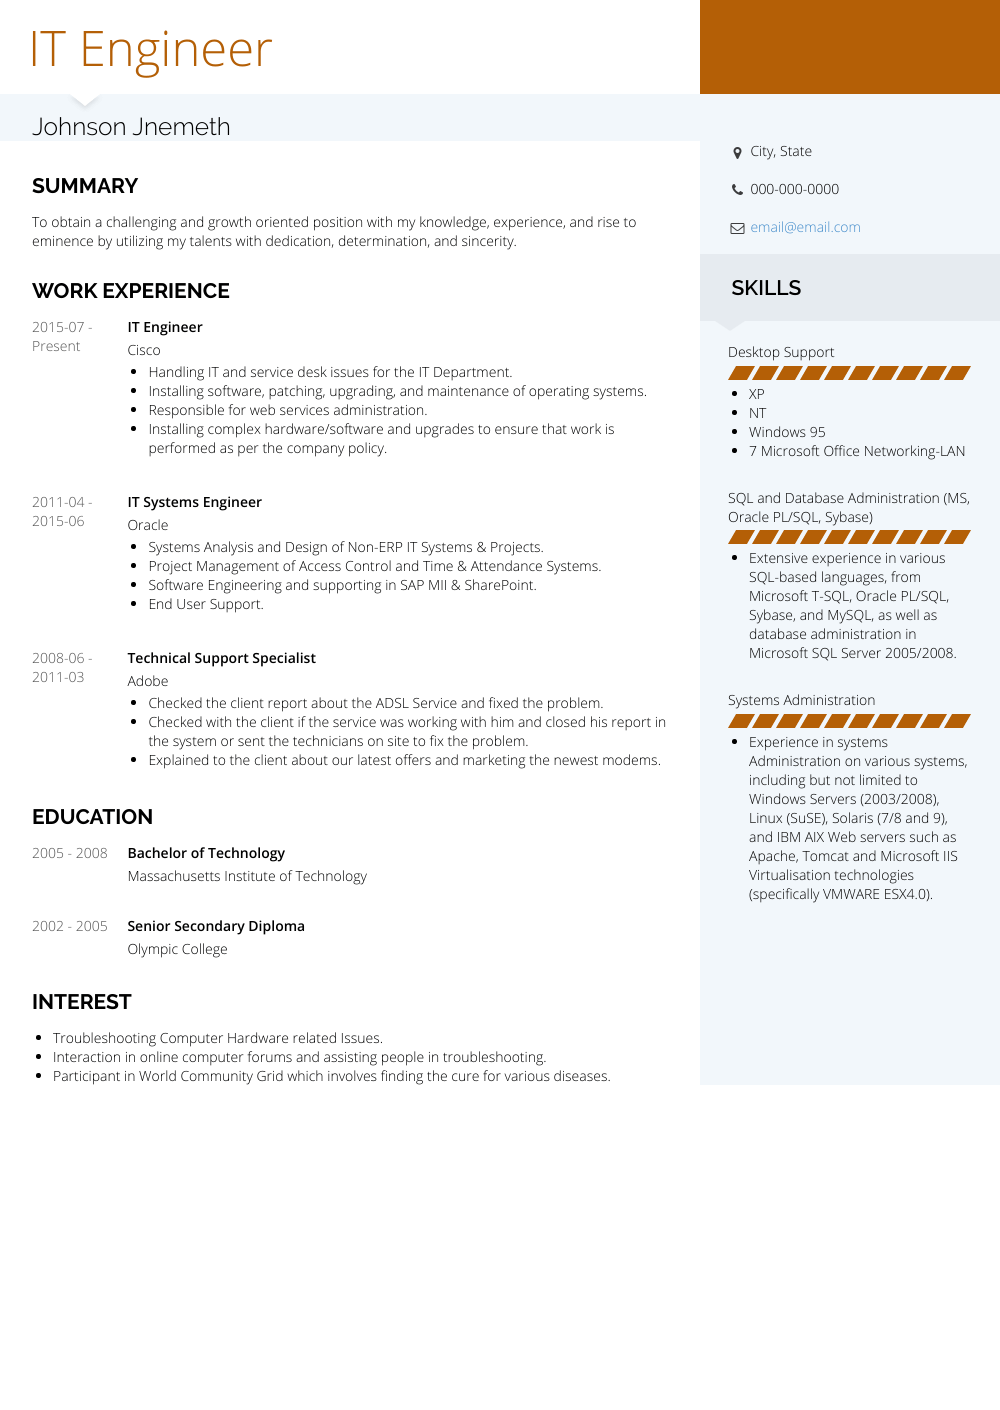 it-engineer-cv-examples-chloe T Resume Format on resume help, resume layout, resume examples, resume cover, resume types, resume style, resume skills, resume categories, resume font, resume outline, resume objectives, resume for cna with experience, resume templates, resume form, resume design, resume mistakes, resume for high school student no experience, resume structure, resume builder, resume references,